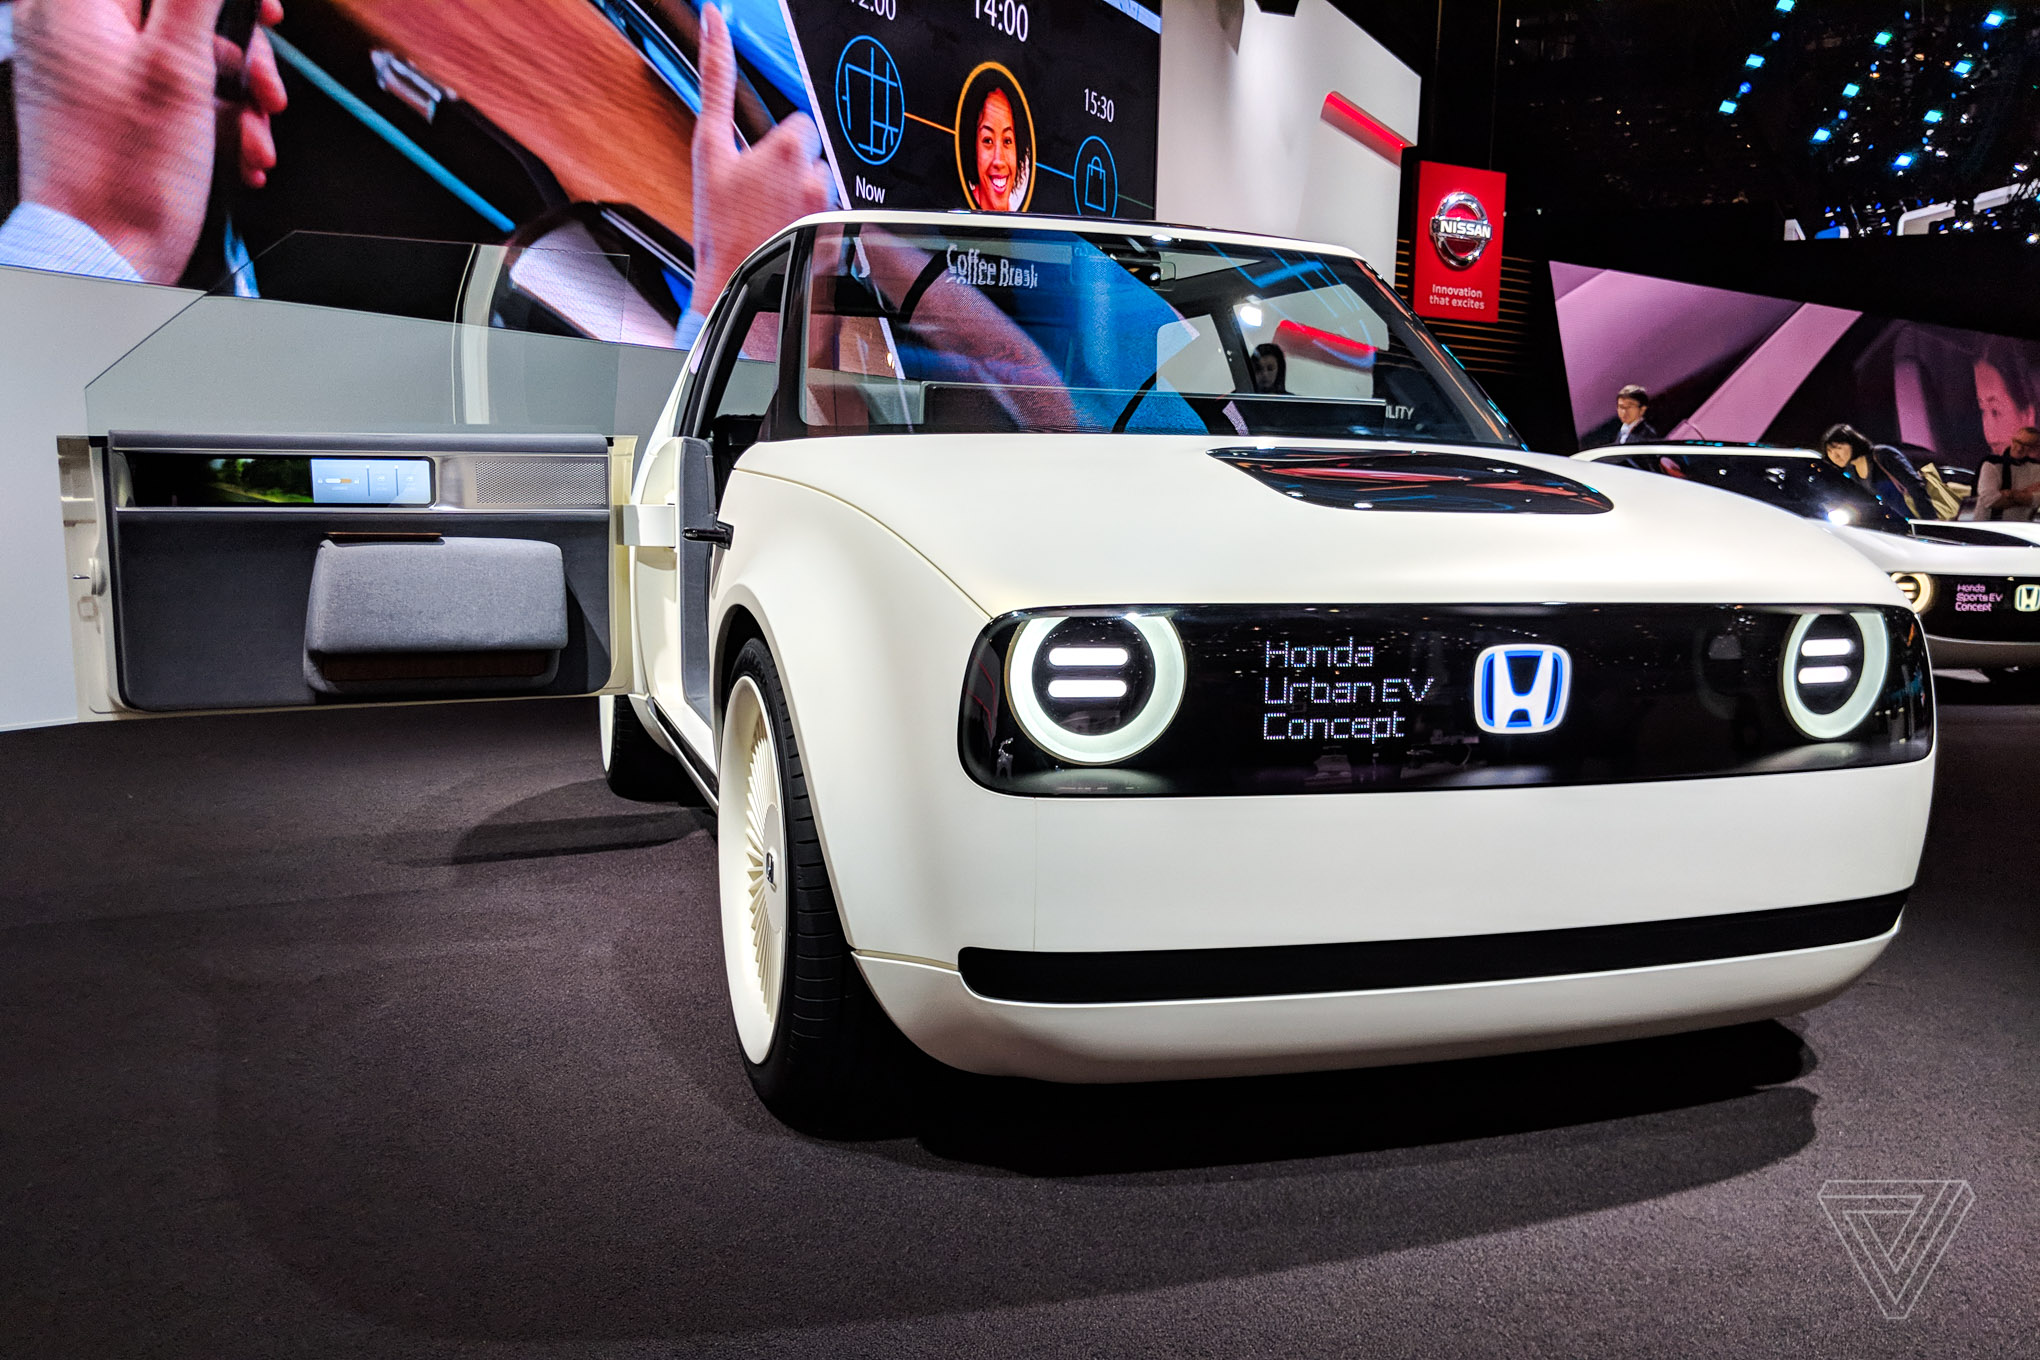 Honda S Urban Ev Concept Is Even More Adorable In The Flesh The Verge